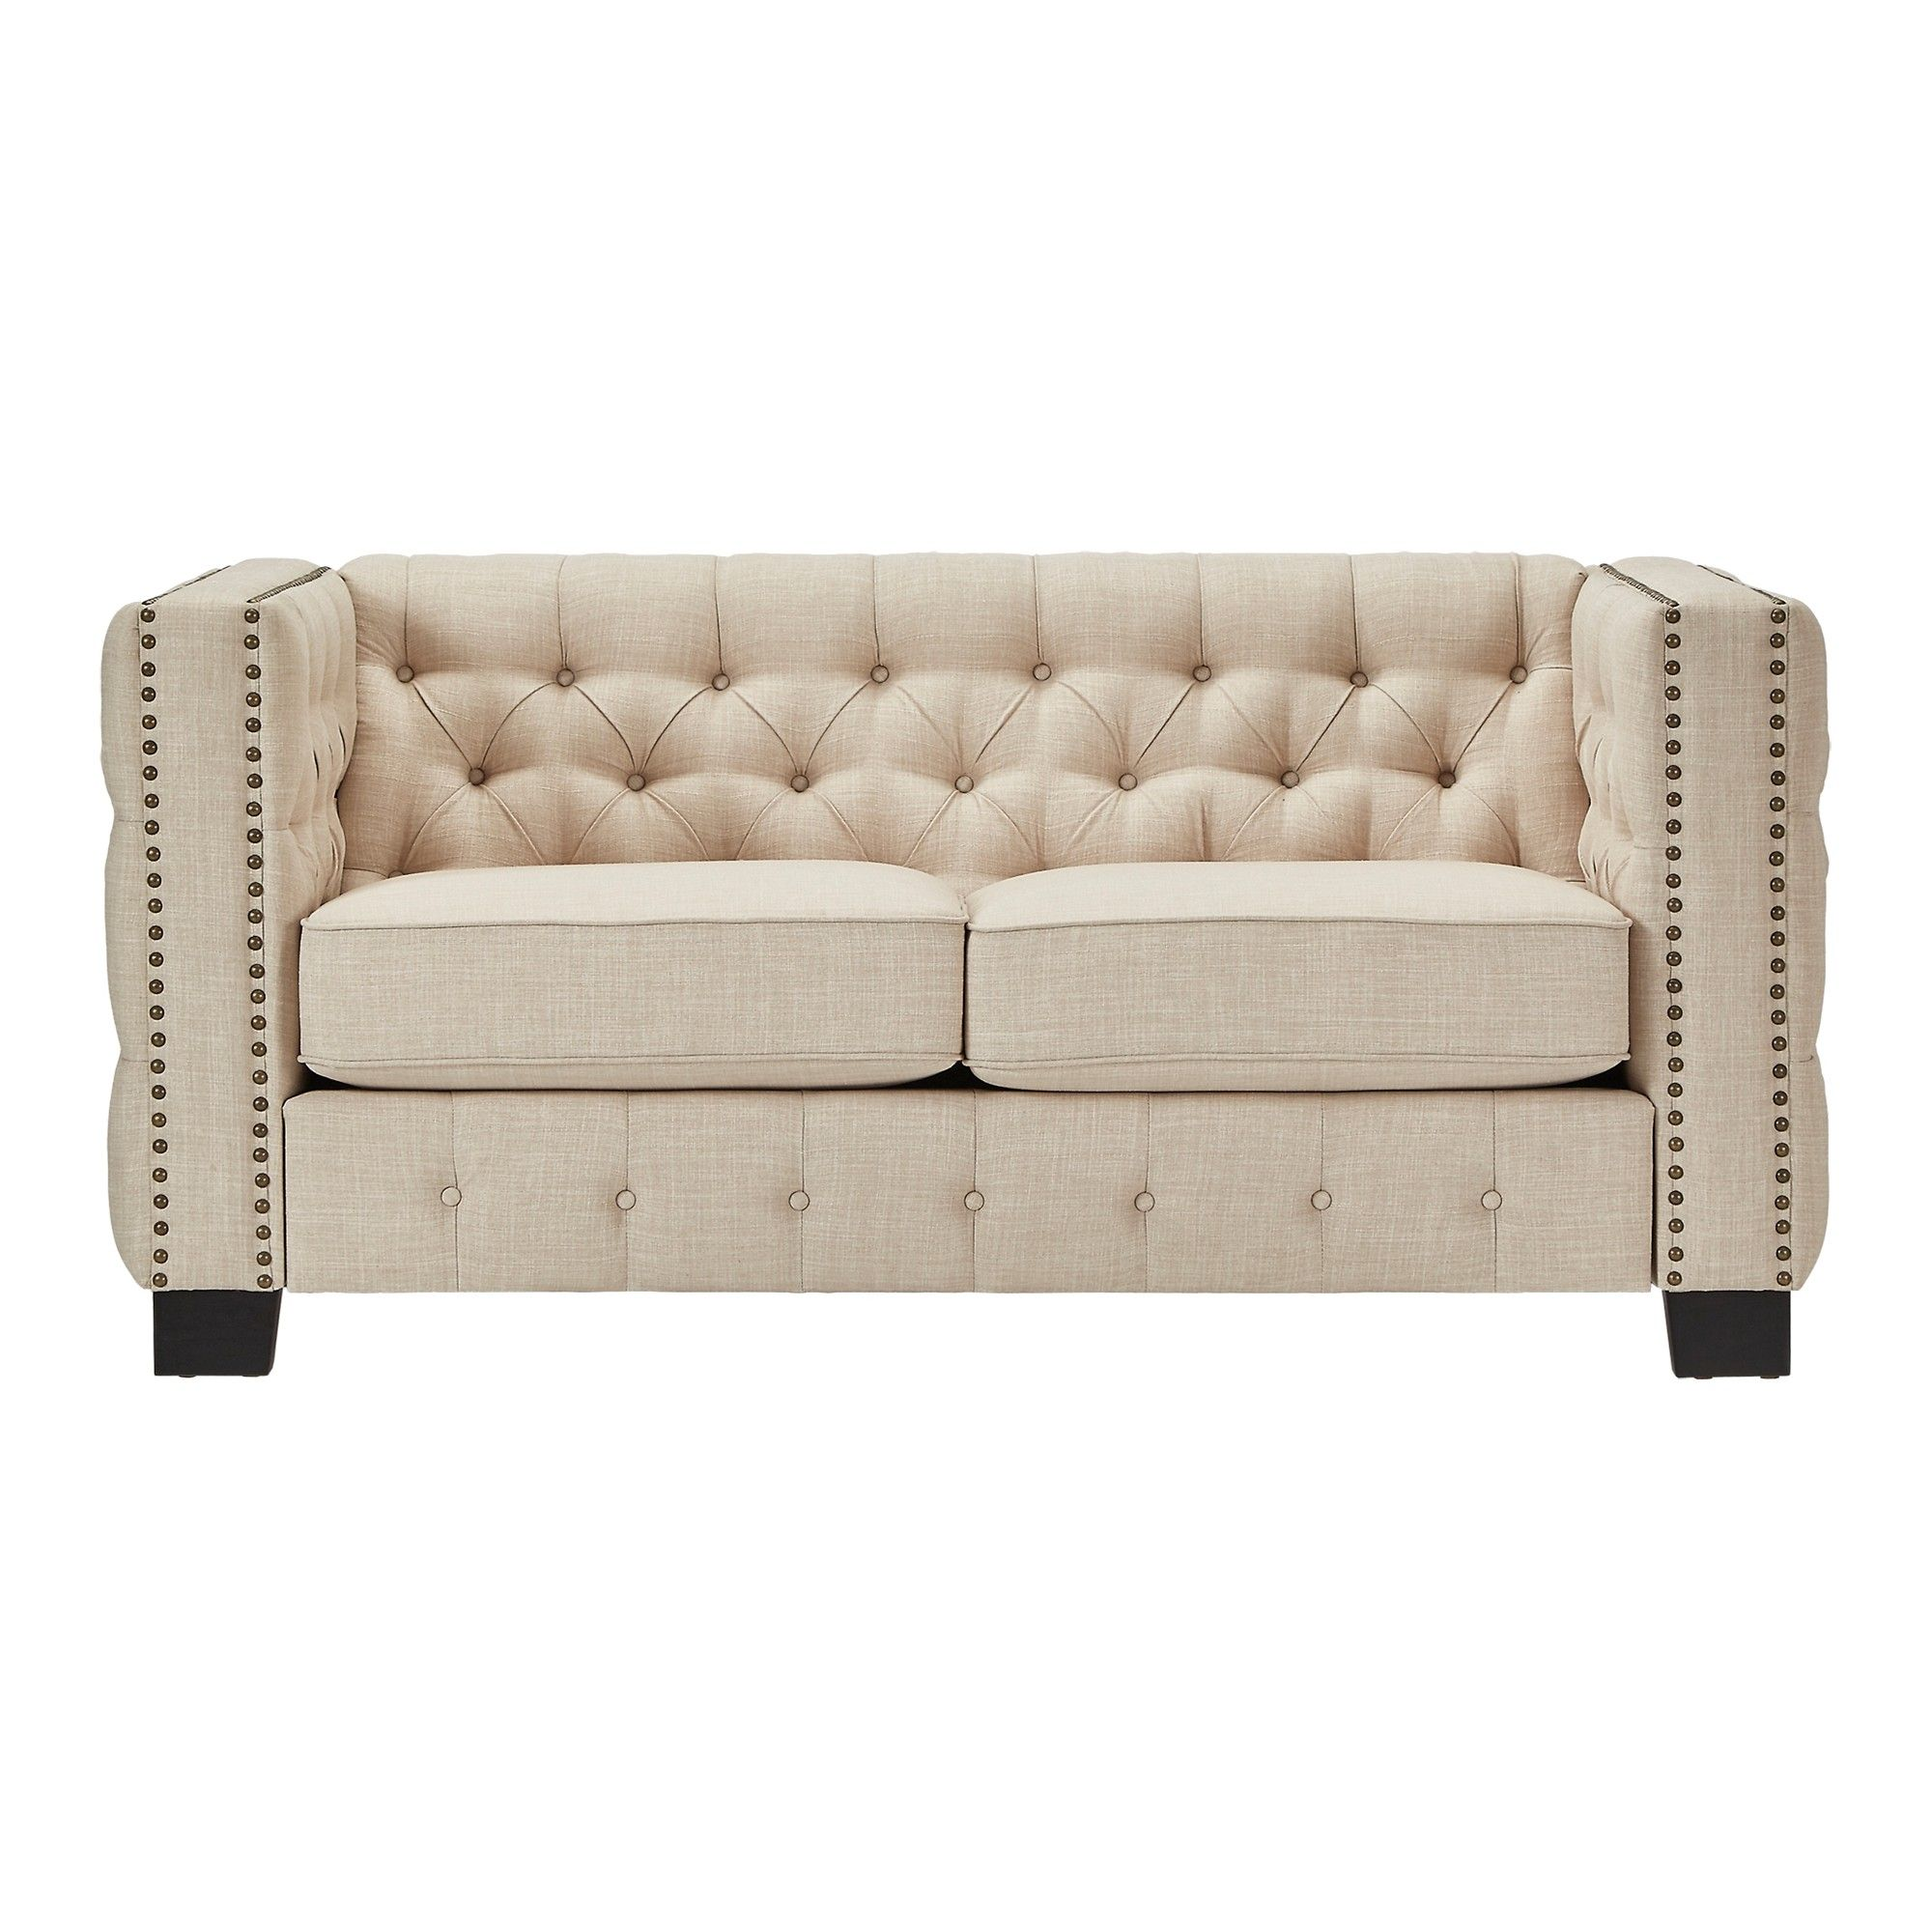 Darlington Button Tufted Loveseat - Oatmeal - Inspire Q, New Oat